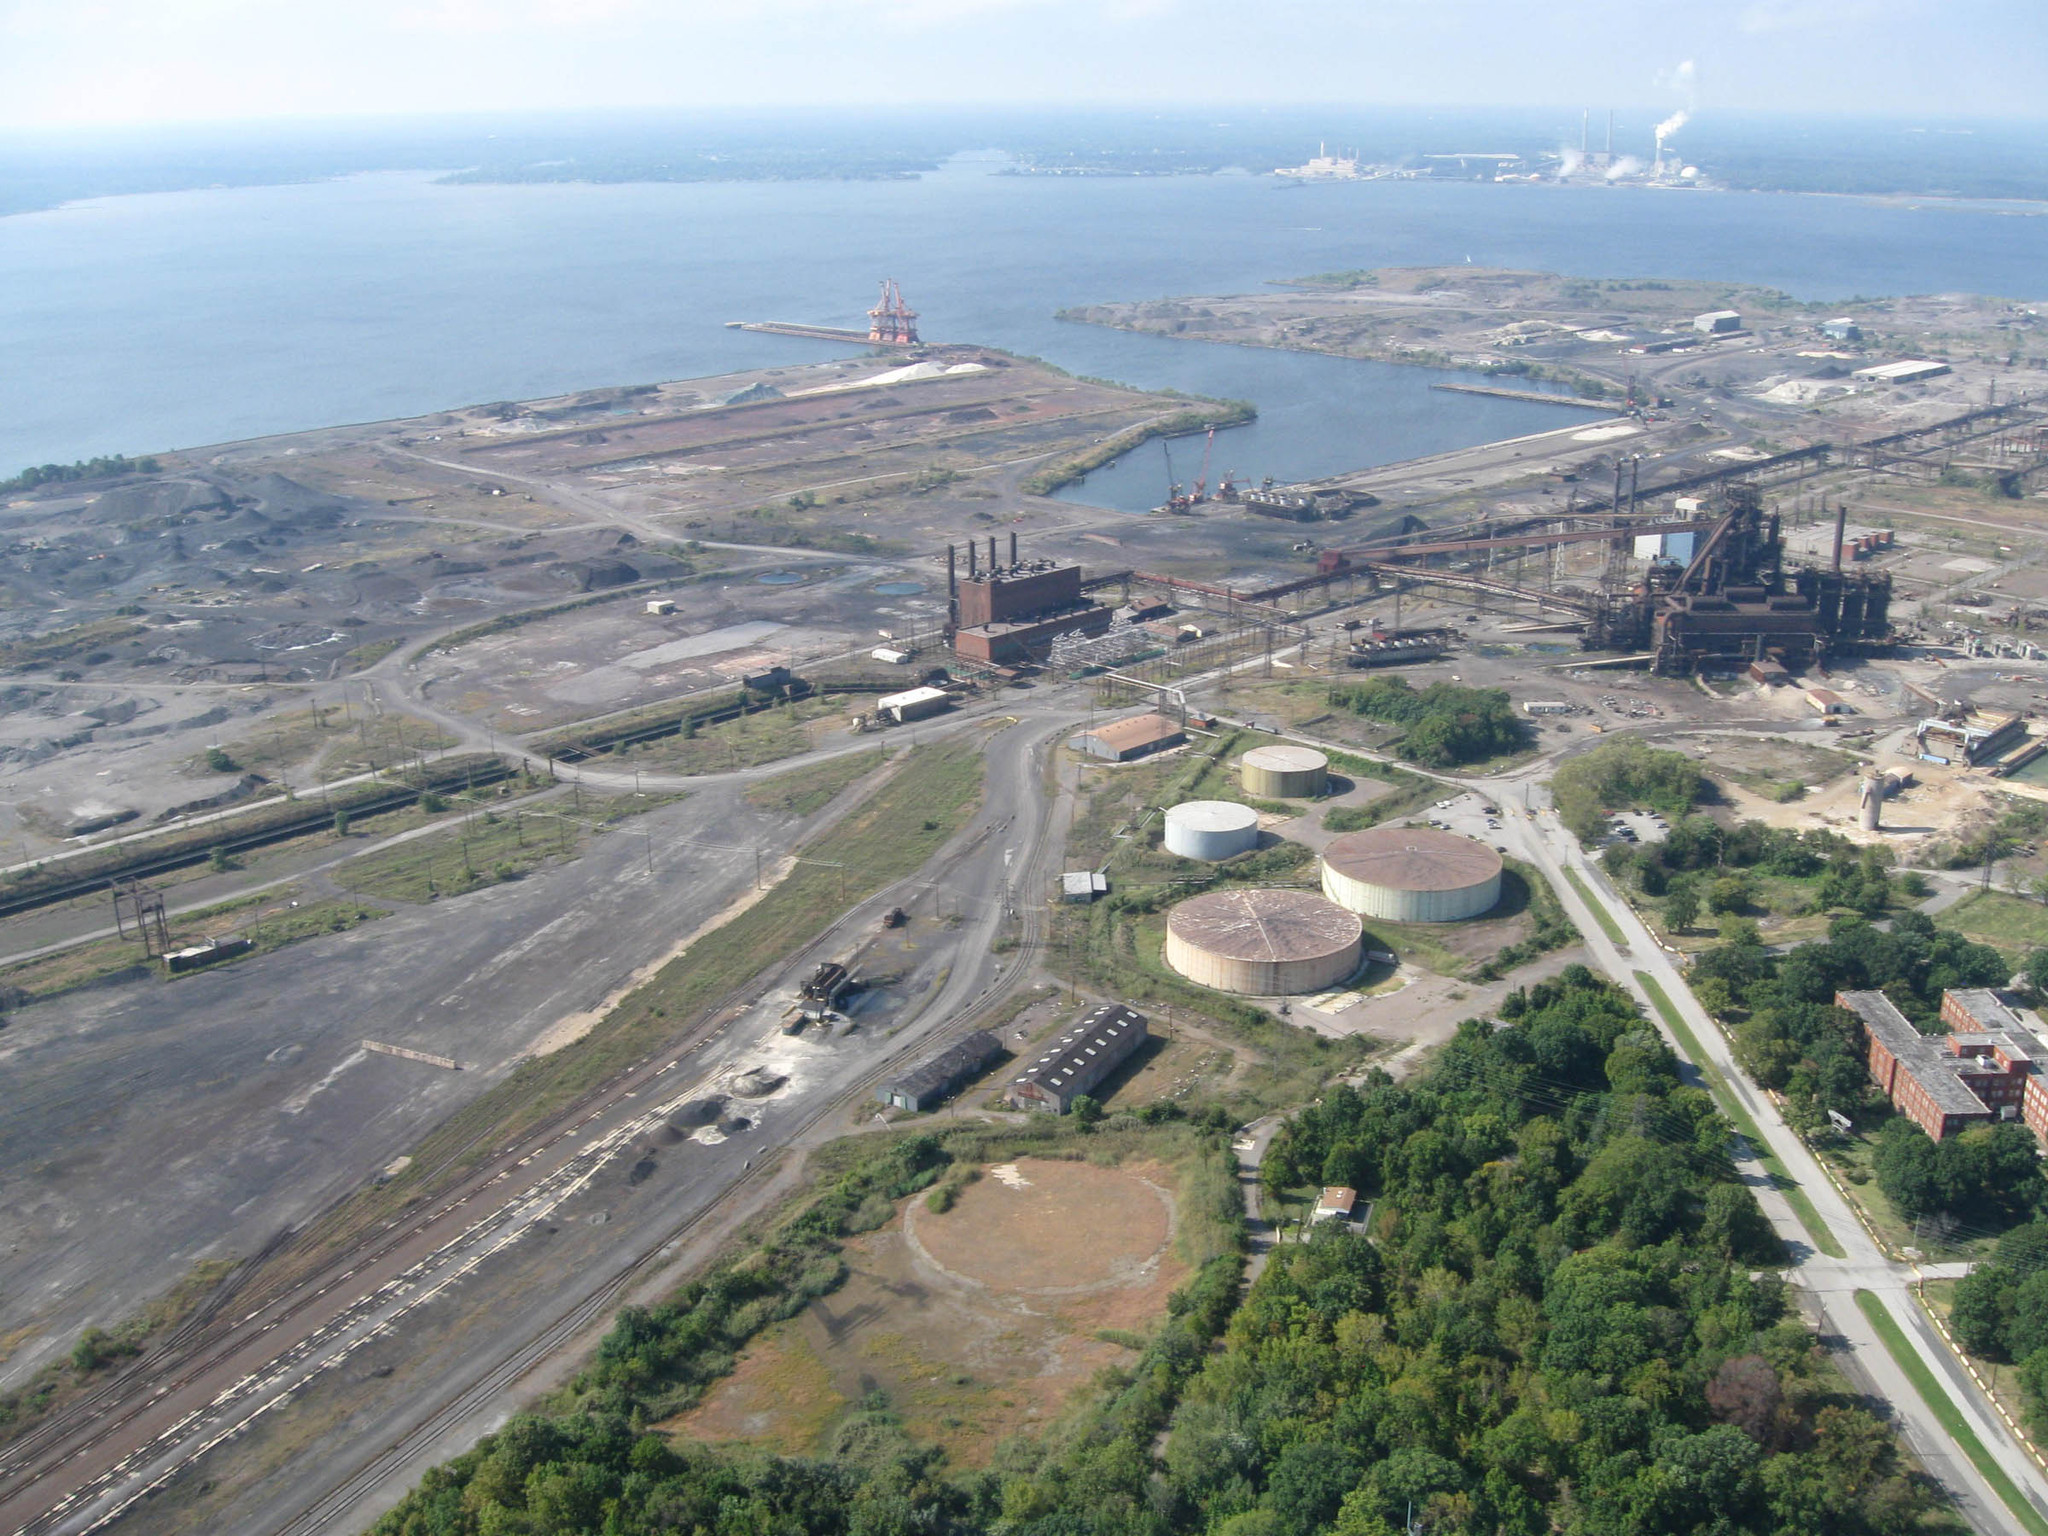 Sparrow Point owners hope to have significant leases in 5